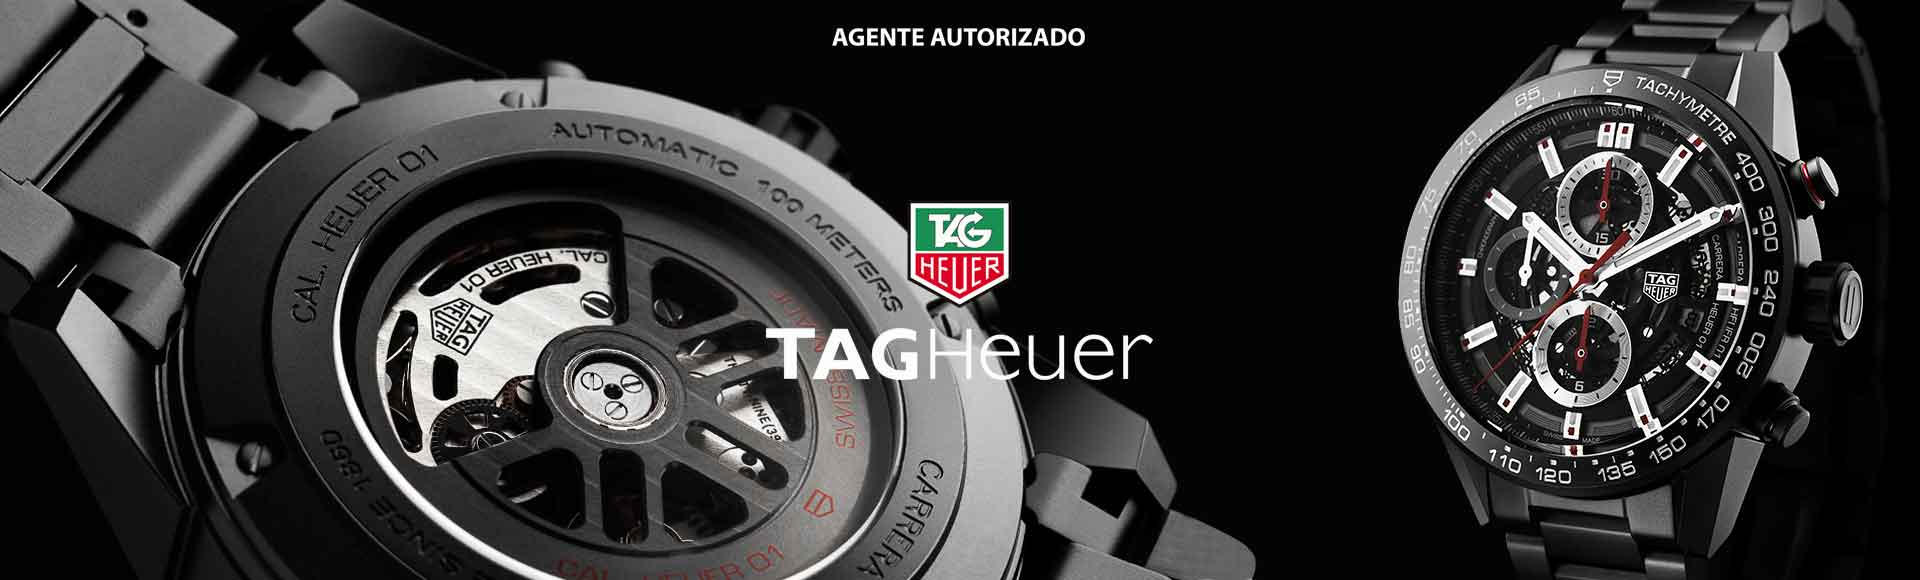 tagHeuer Luxury Time